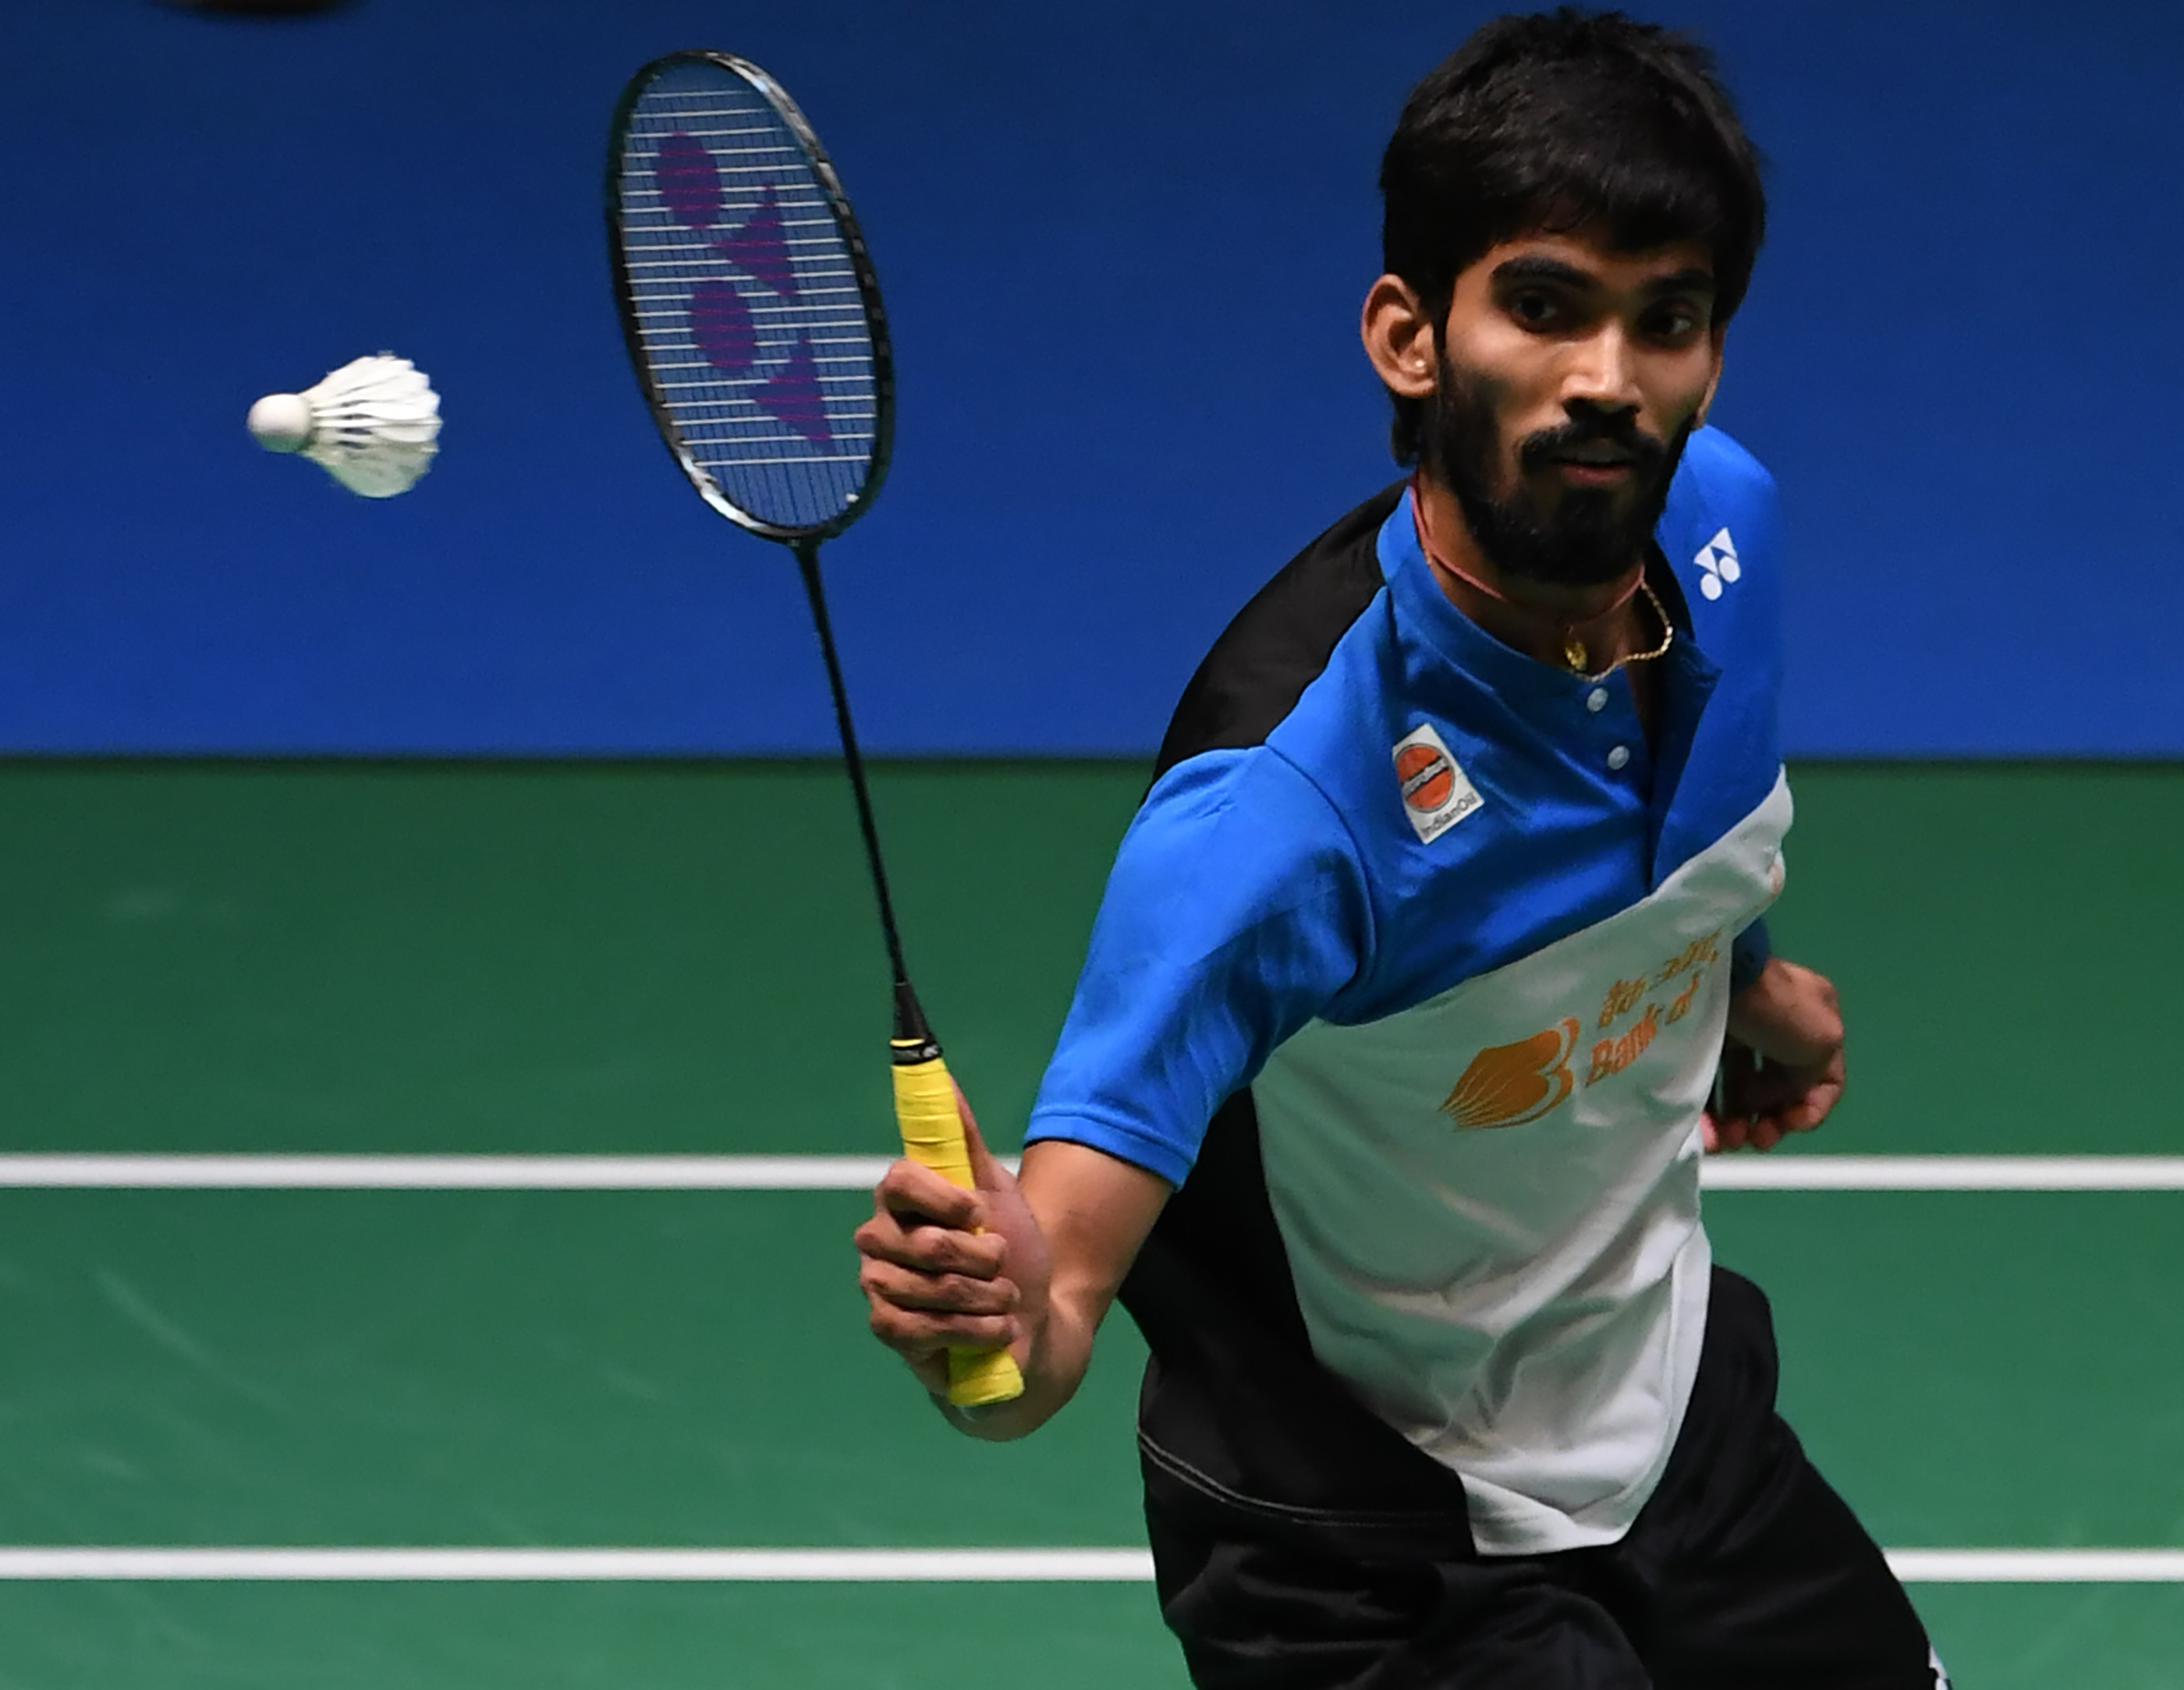 K Srikanth takes on Brice Leverdez in the first round (Image: AFP)